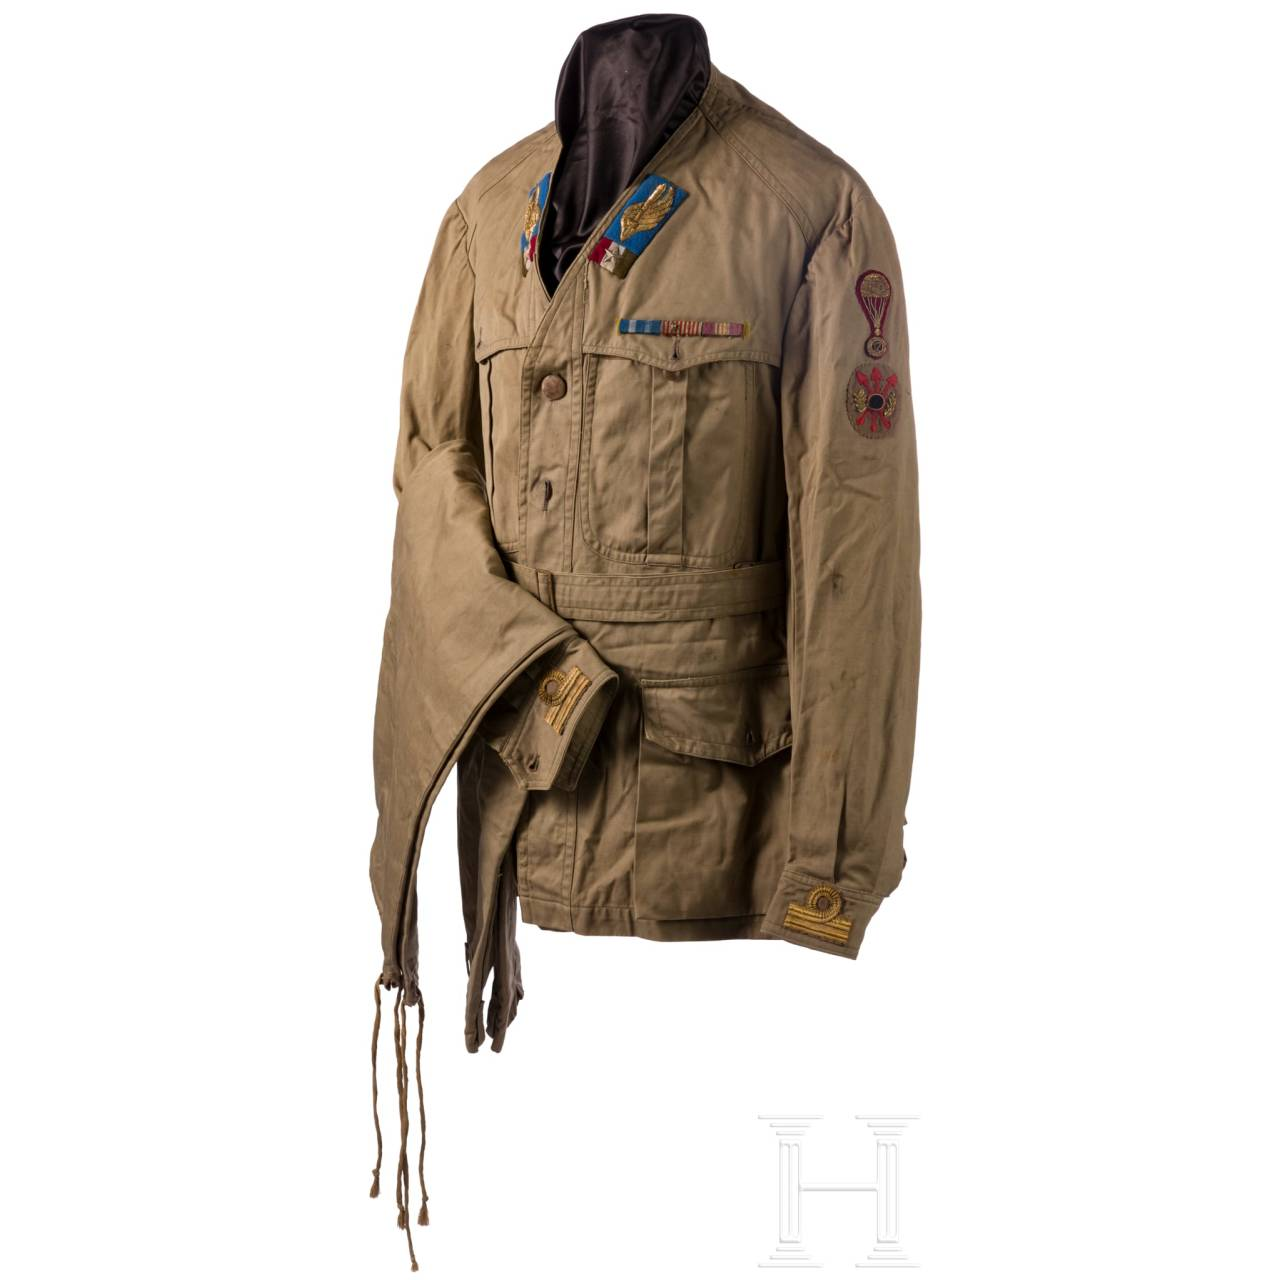 A summer uniform for a training officer of the paratroopers in World War II